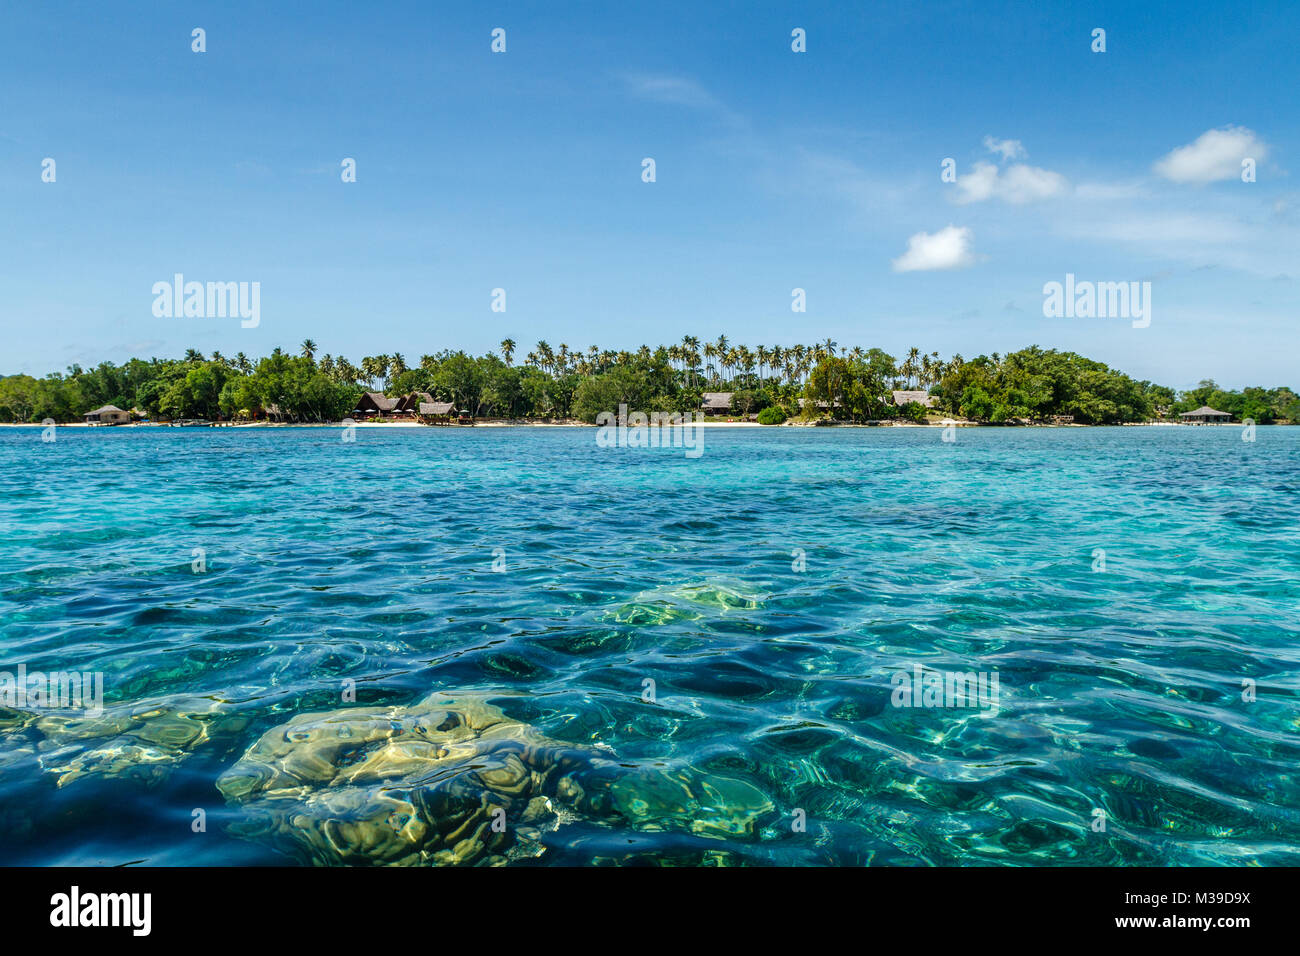 Ratua Private Island, view of the resort from the ocean, Republic of Vanuatu - Stock Image